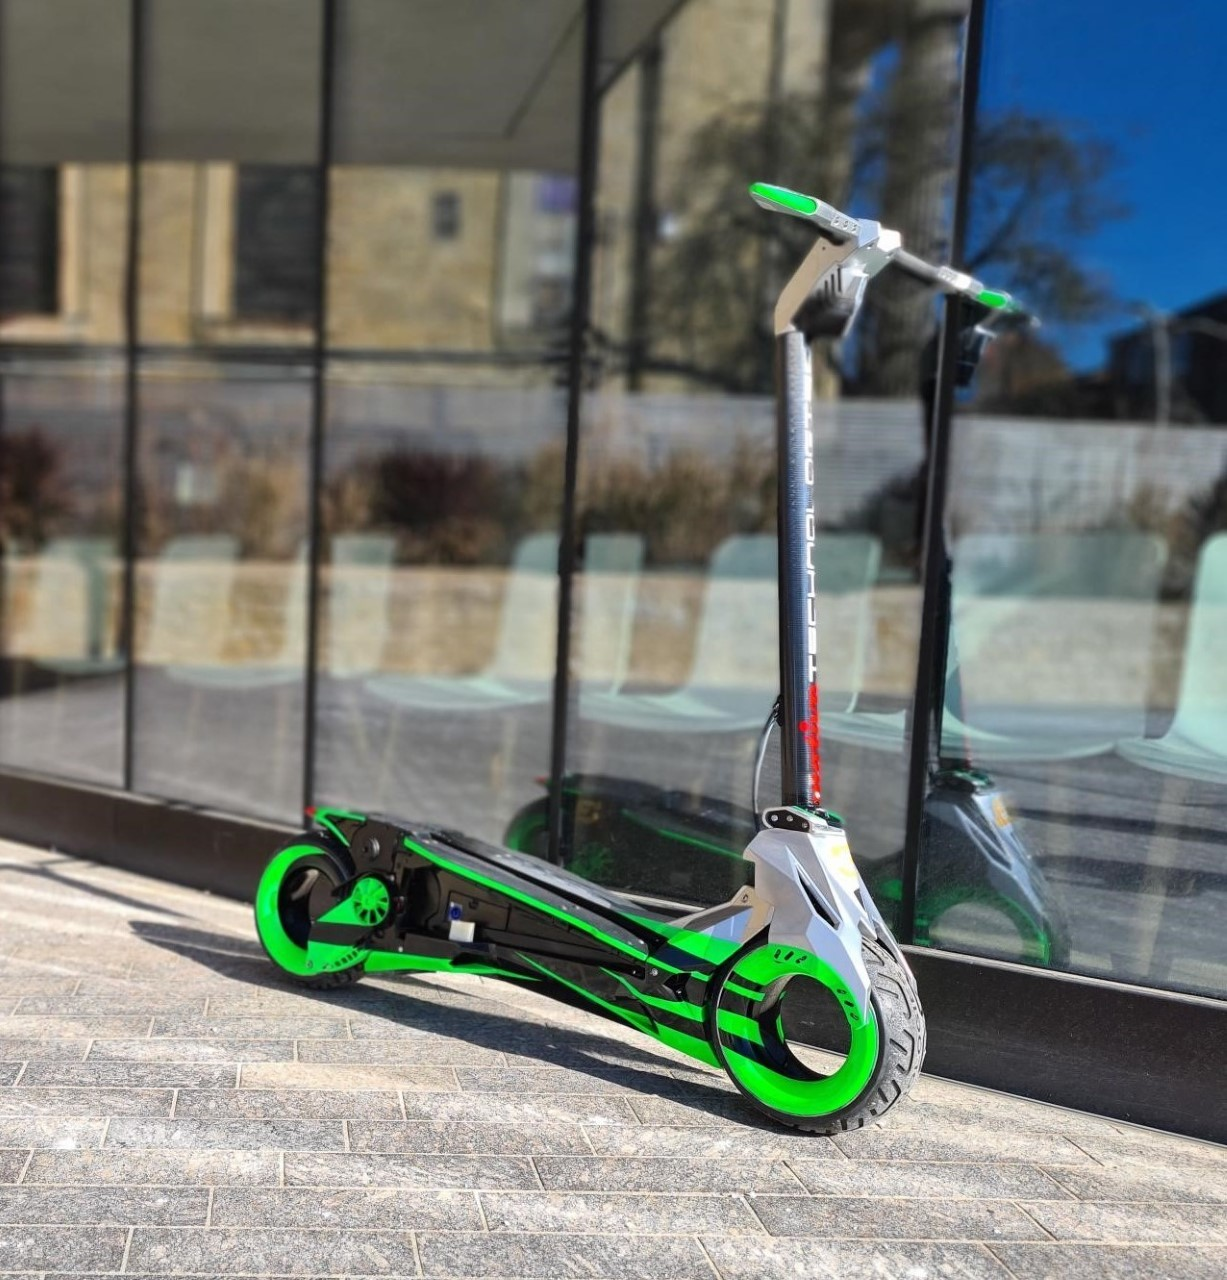 The stolen electric scooter